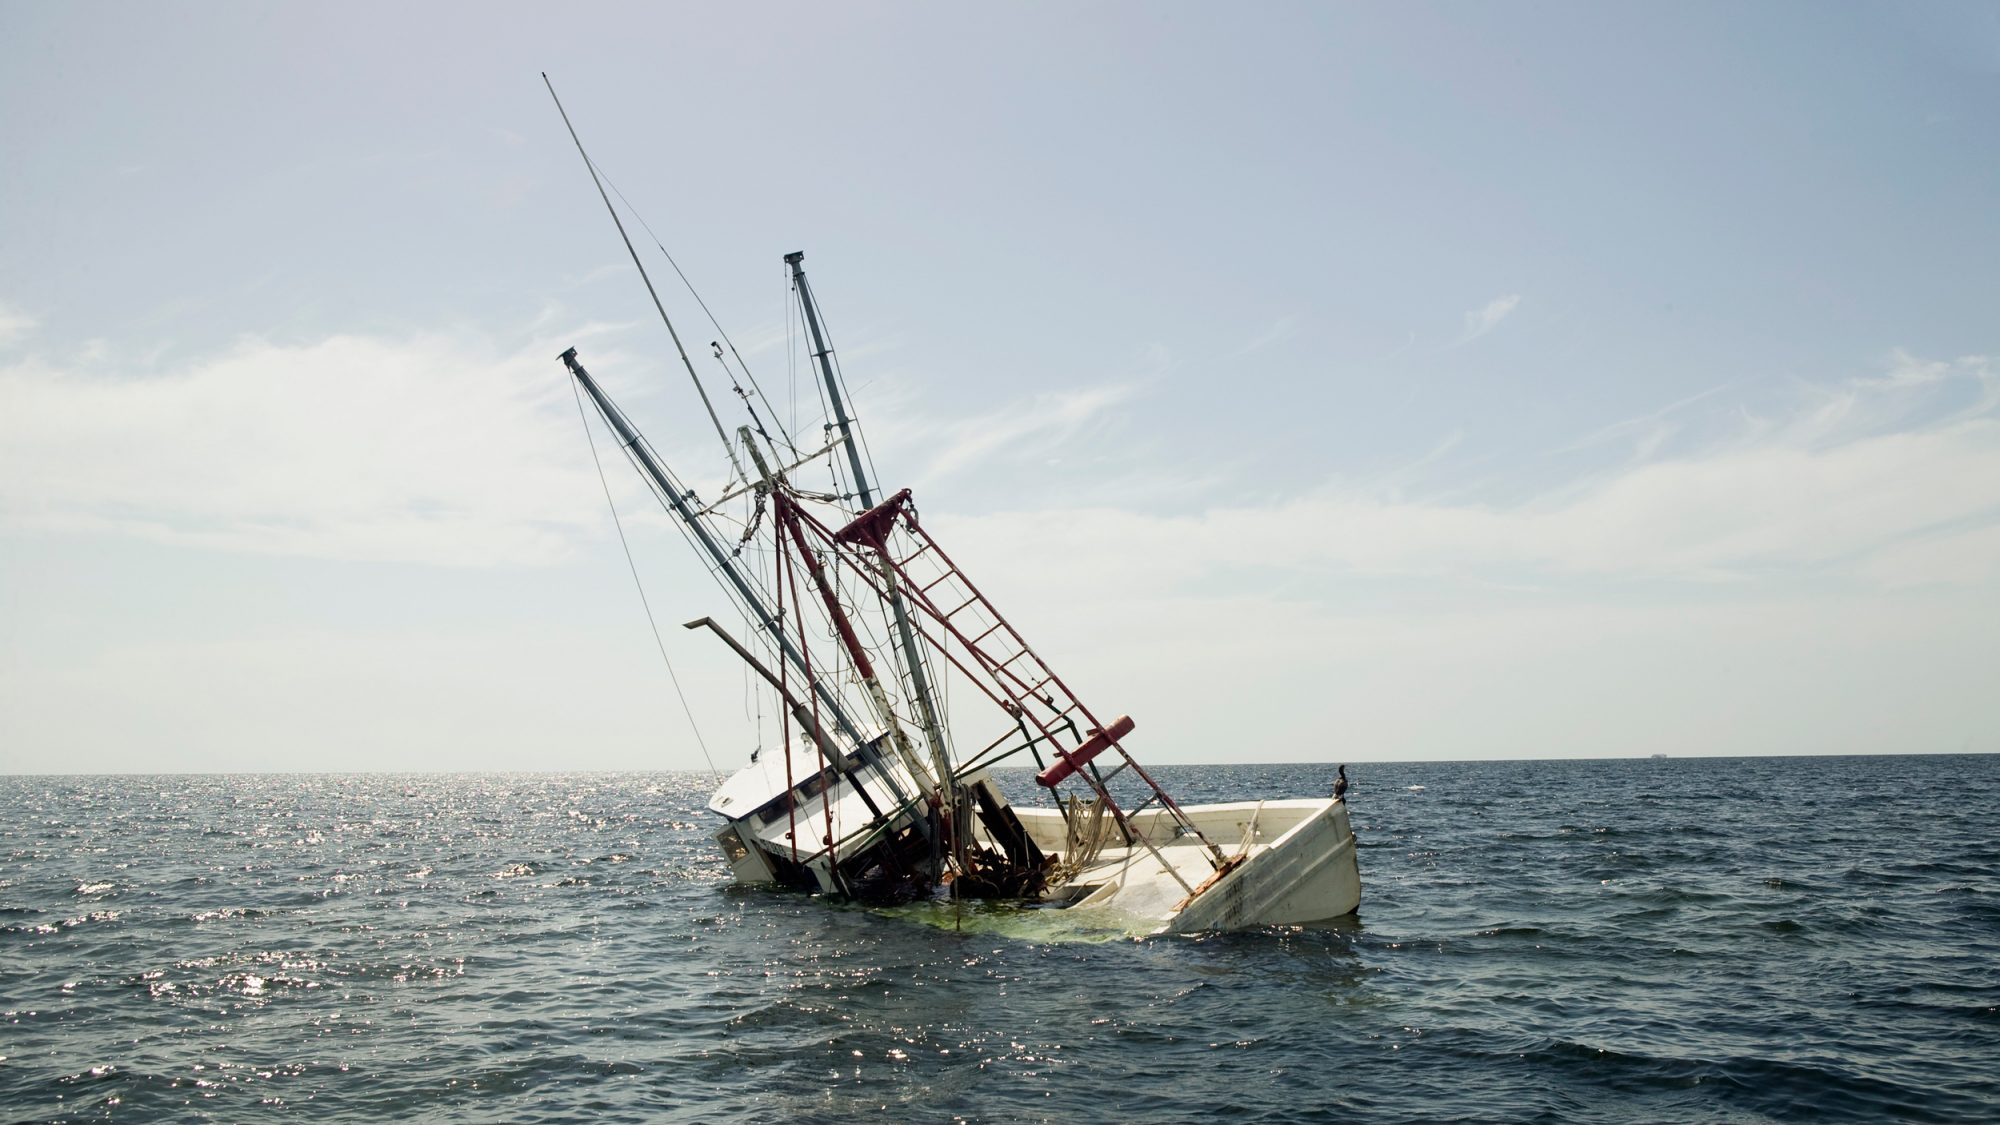 Man Saves His Sinking Boat With A Vodka Cork